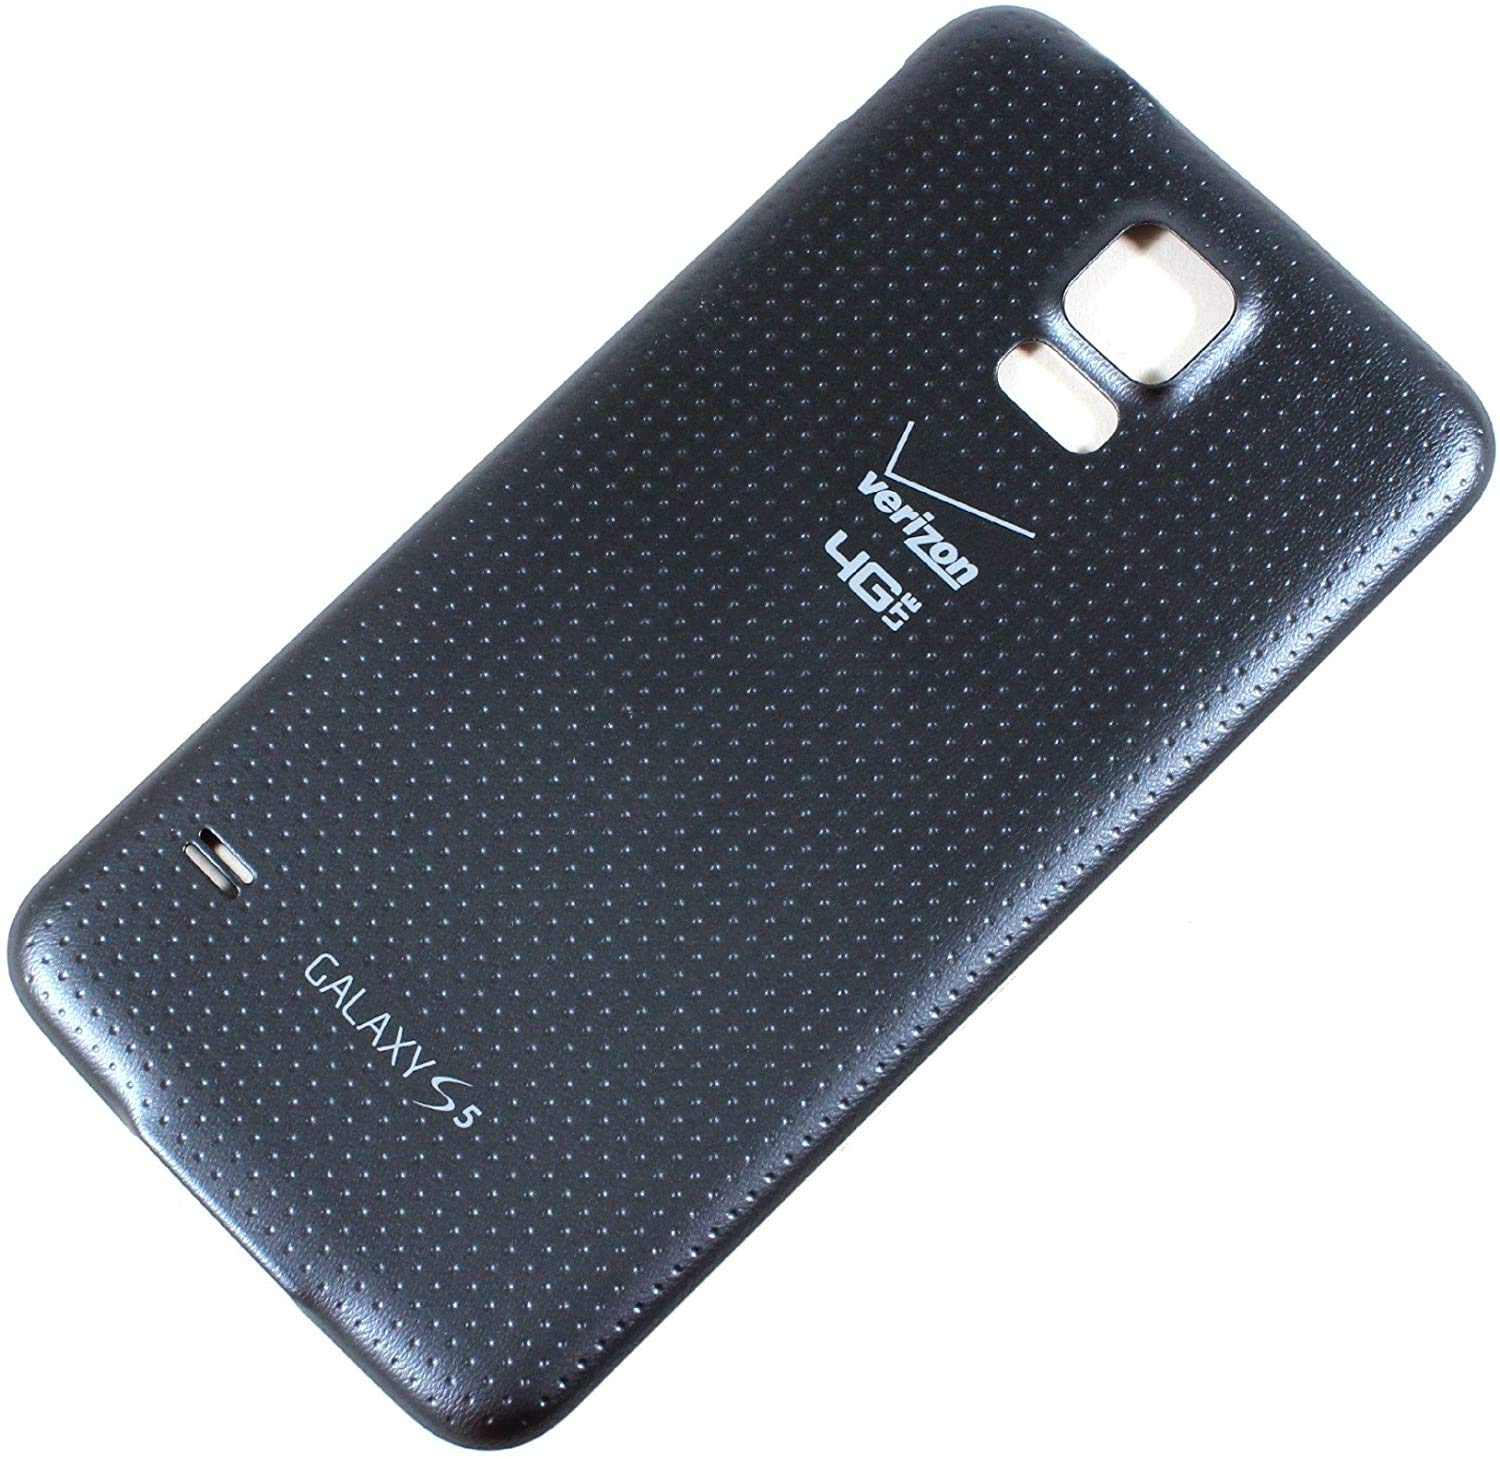 OEM Samsung Galaxy S5 SM-G900 Battery Door Back Cover Replacement - Charcoal Black (Samsung Logo)